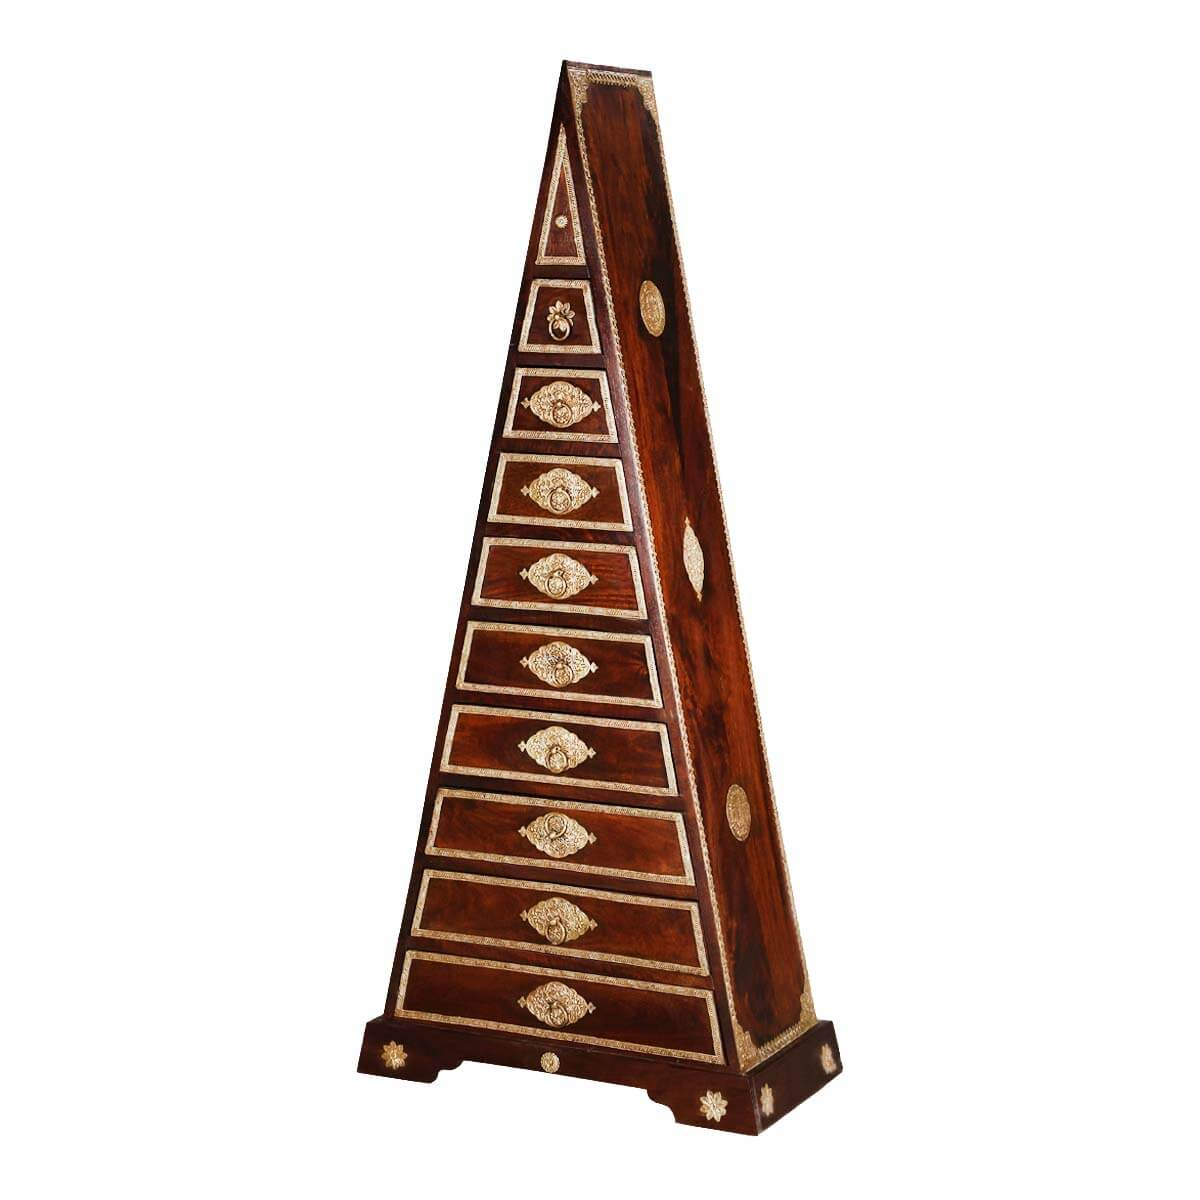 Tangier Brass Inlay Mango Wood Pyramid Tower Dresser With 9 Drawers